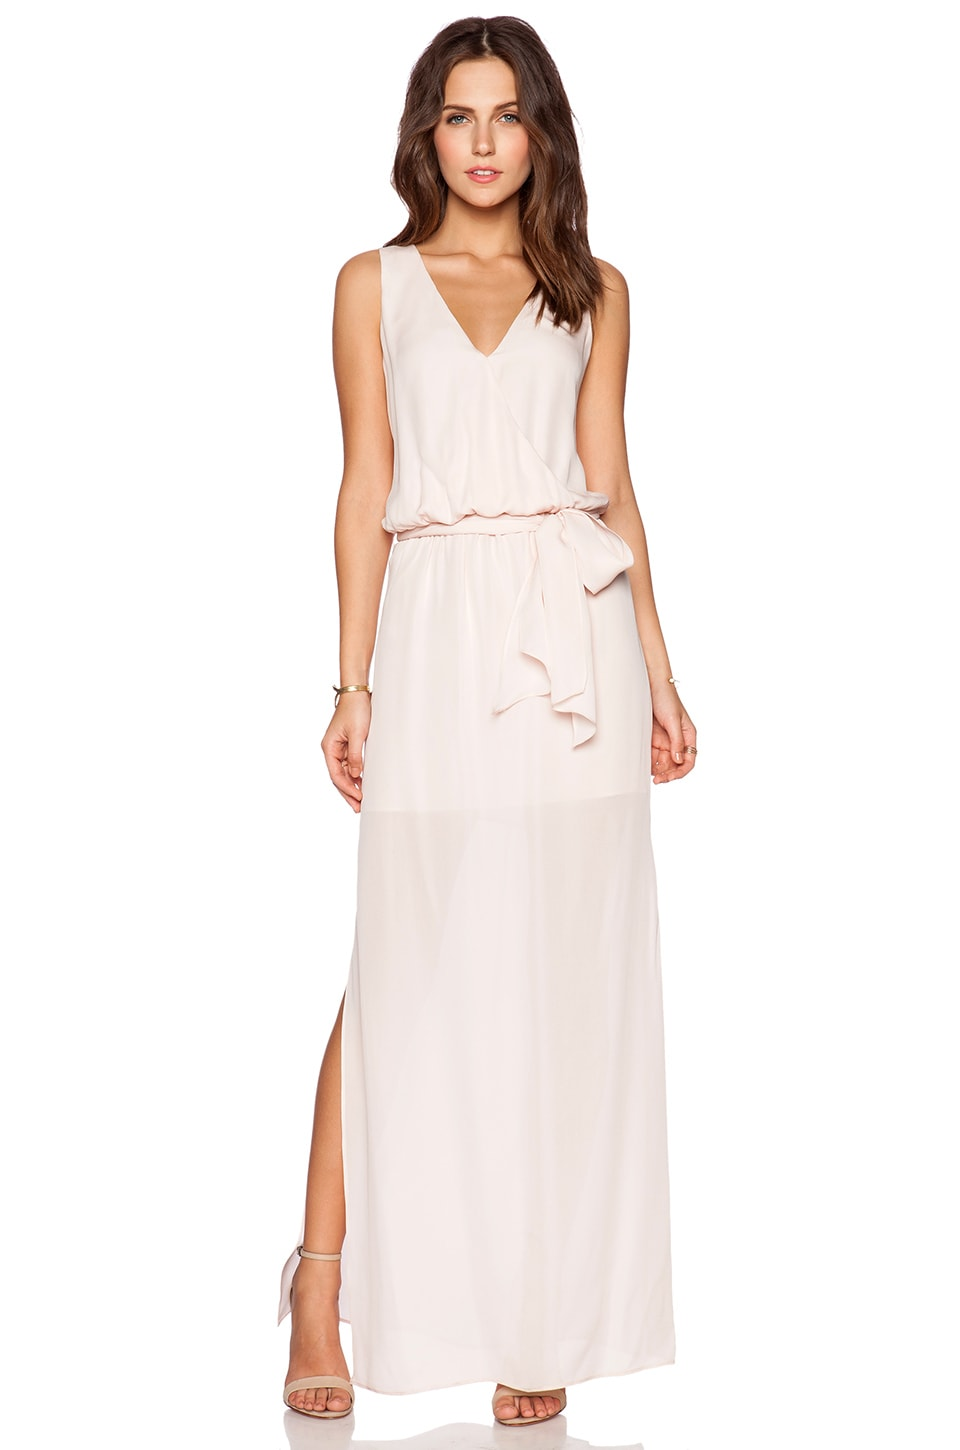 Rory Beca MAID by Yifat Oren Lucy Gown in Blush